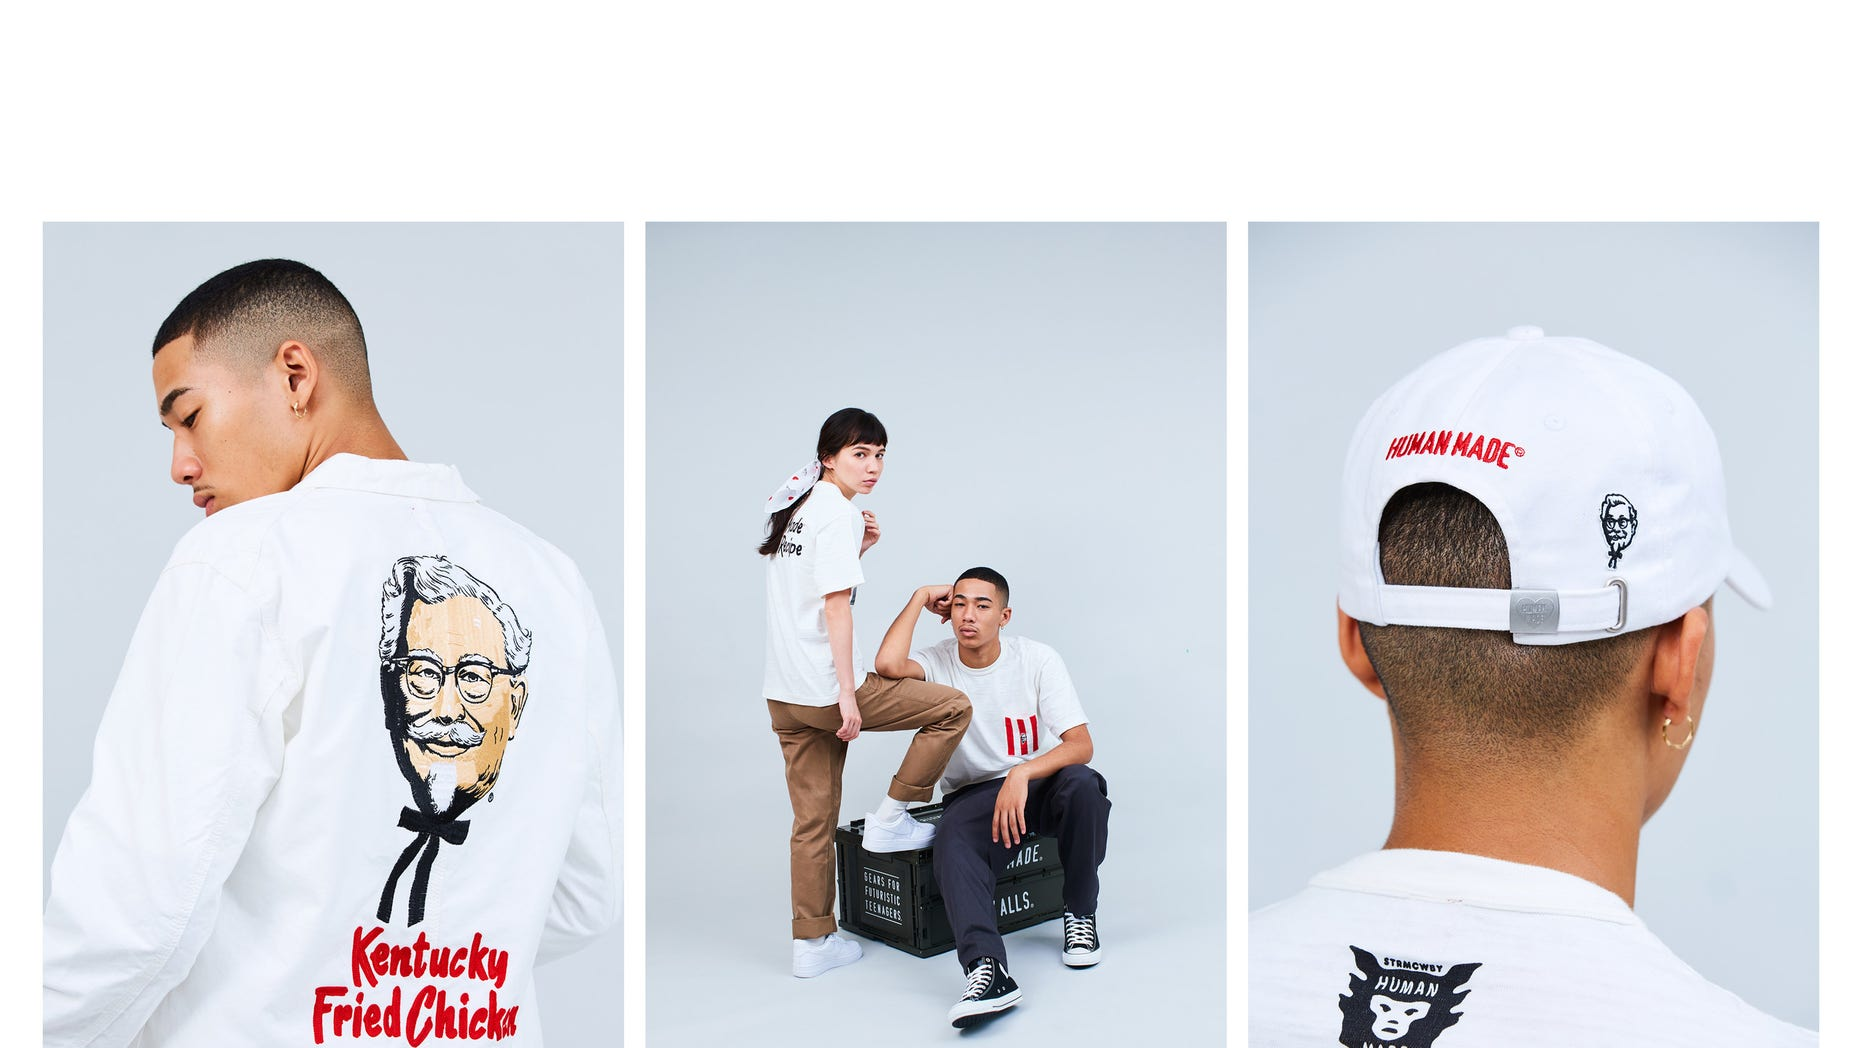 KFC releasing apparel collection with items selling for